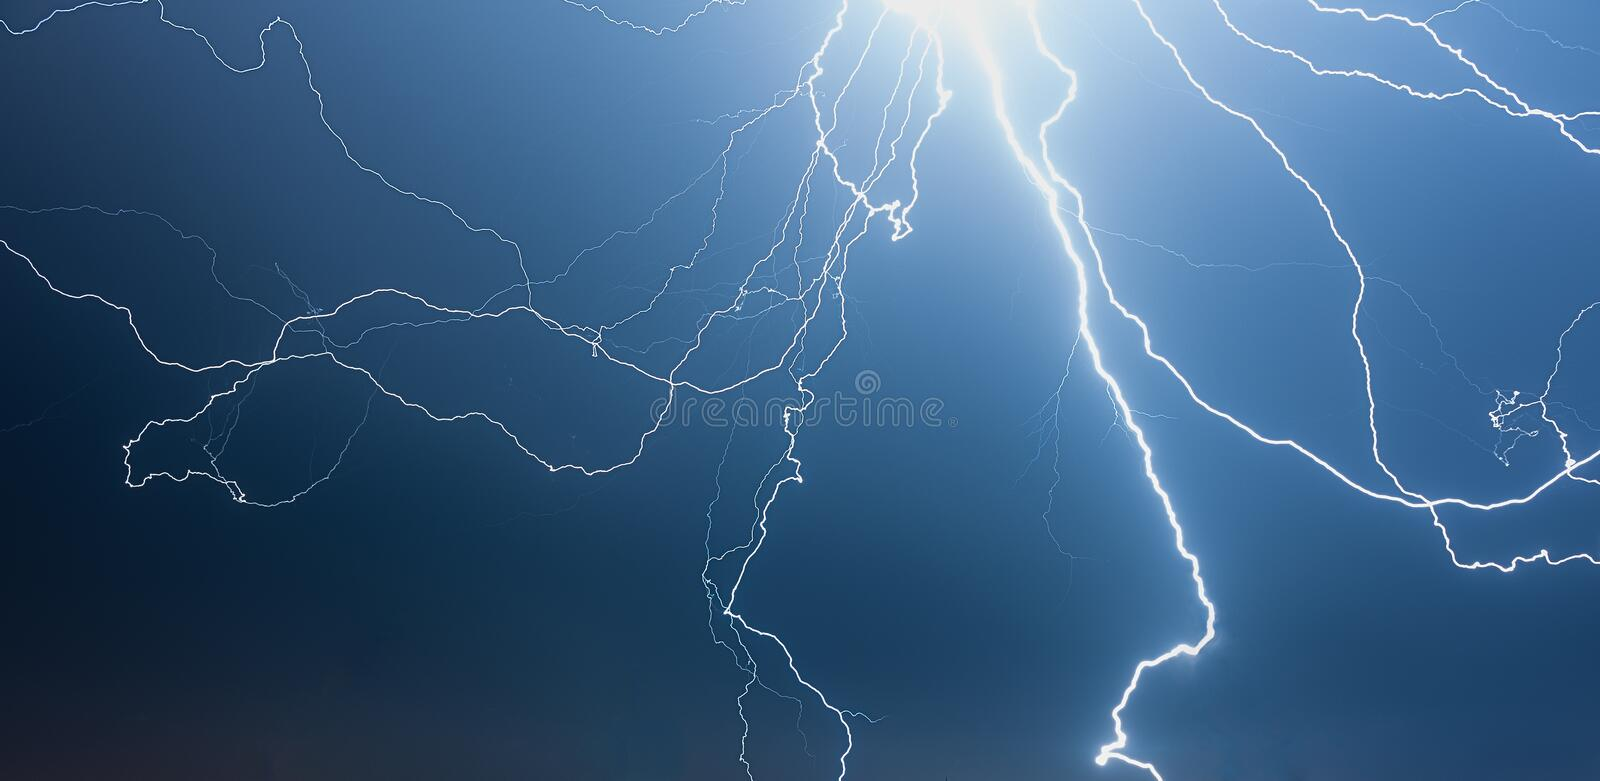 Download Thunderstorm at Night stock image. Image of cloud, blue - 32055107